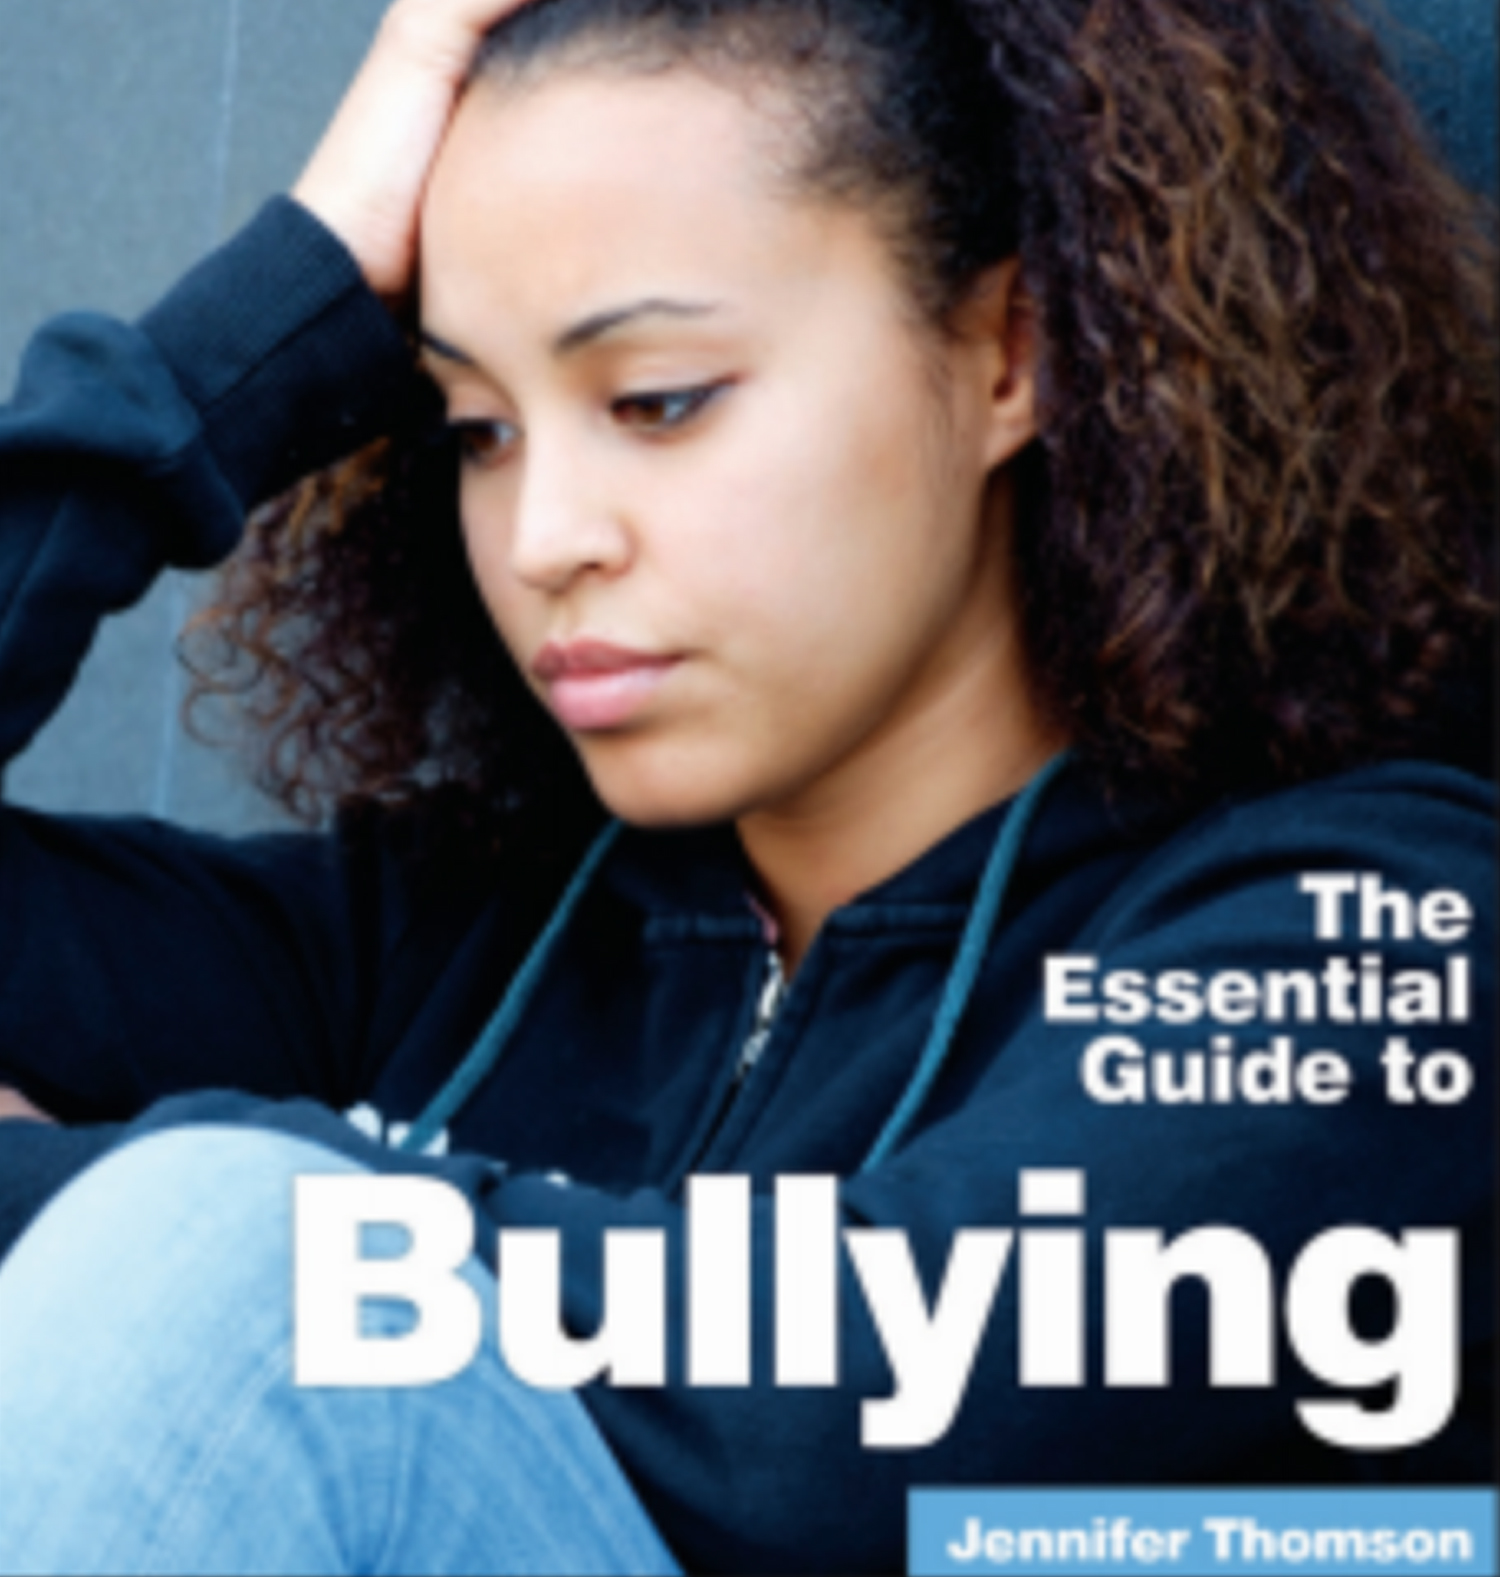 The Essential Guide To Bullying